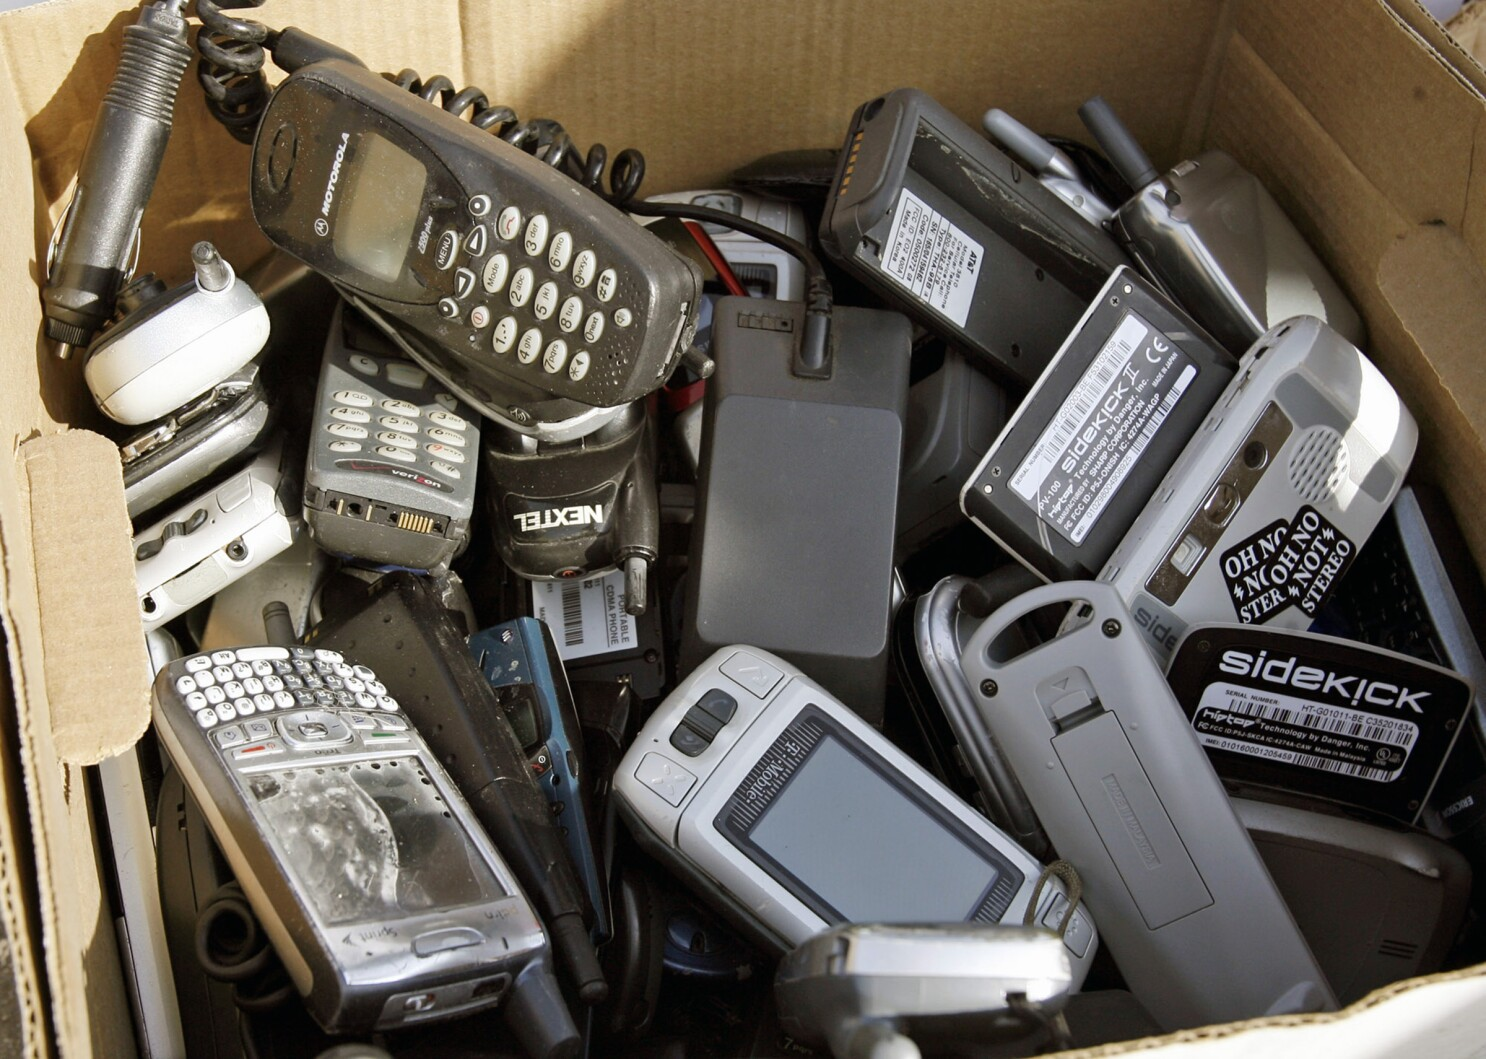 Letter to the Editor: City Council should consider defraying costs of recycling  e-waste - Los Angeles Times